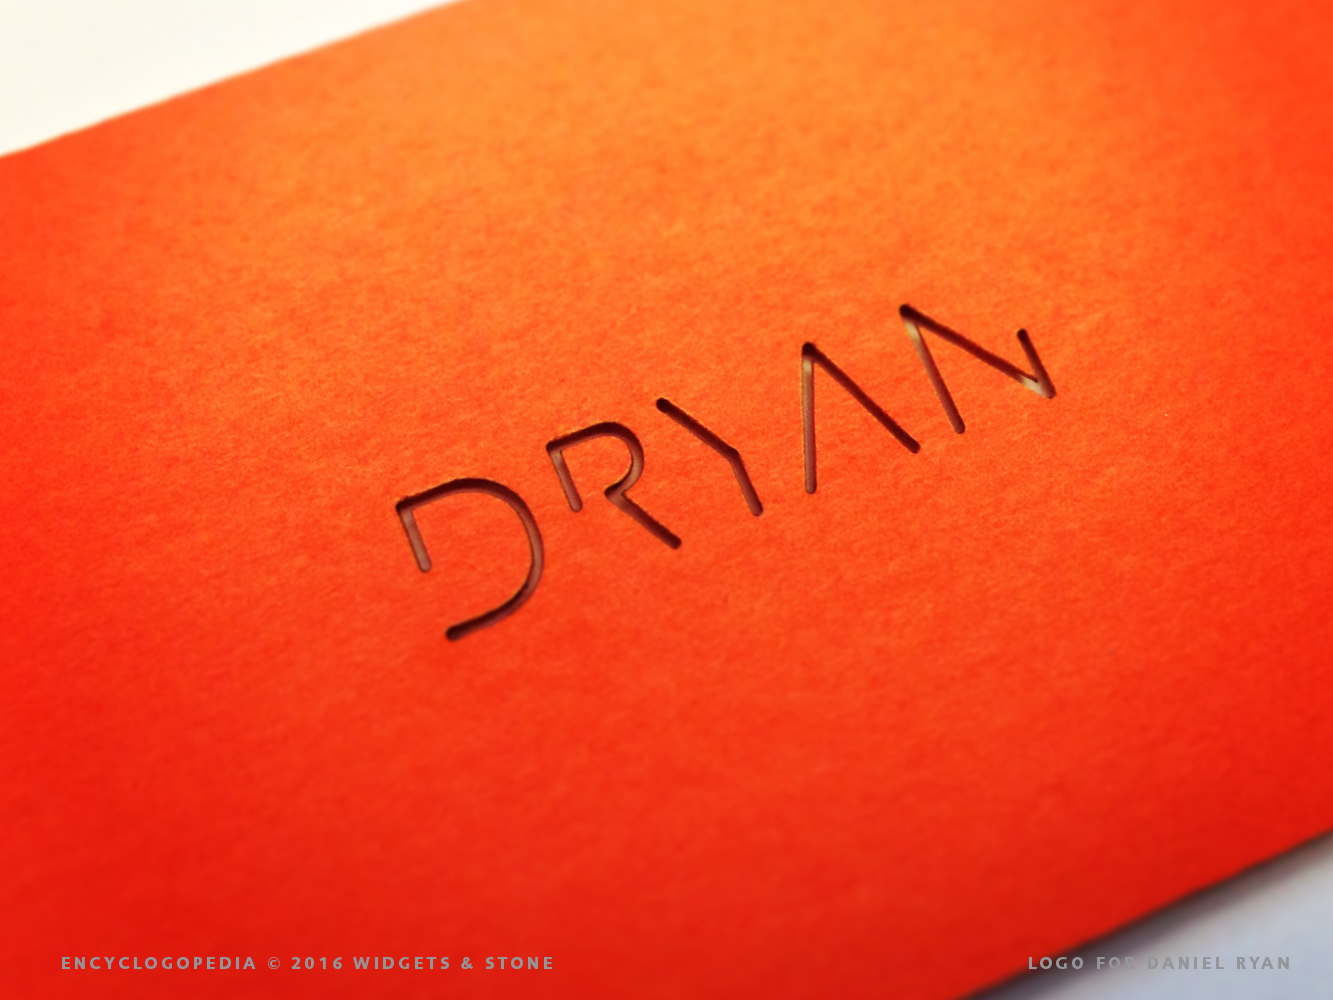 Copy of Dryan logo application design